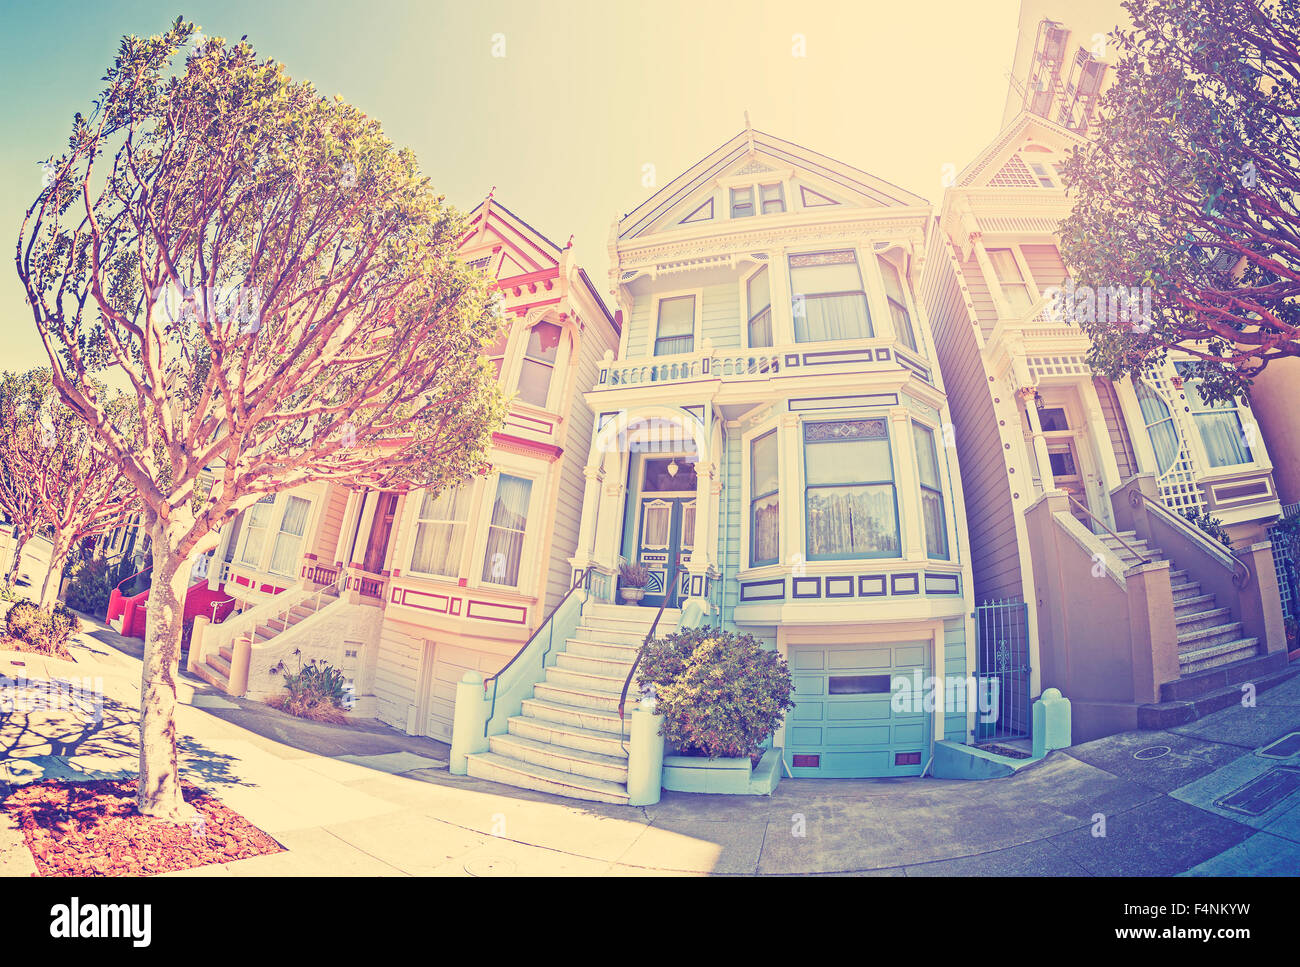 Vintage stylized fisheye lens street photo of the Painted Ladies, San Francisco, USA. - Stock Image